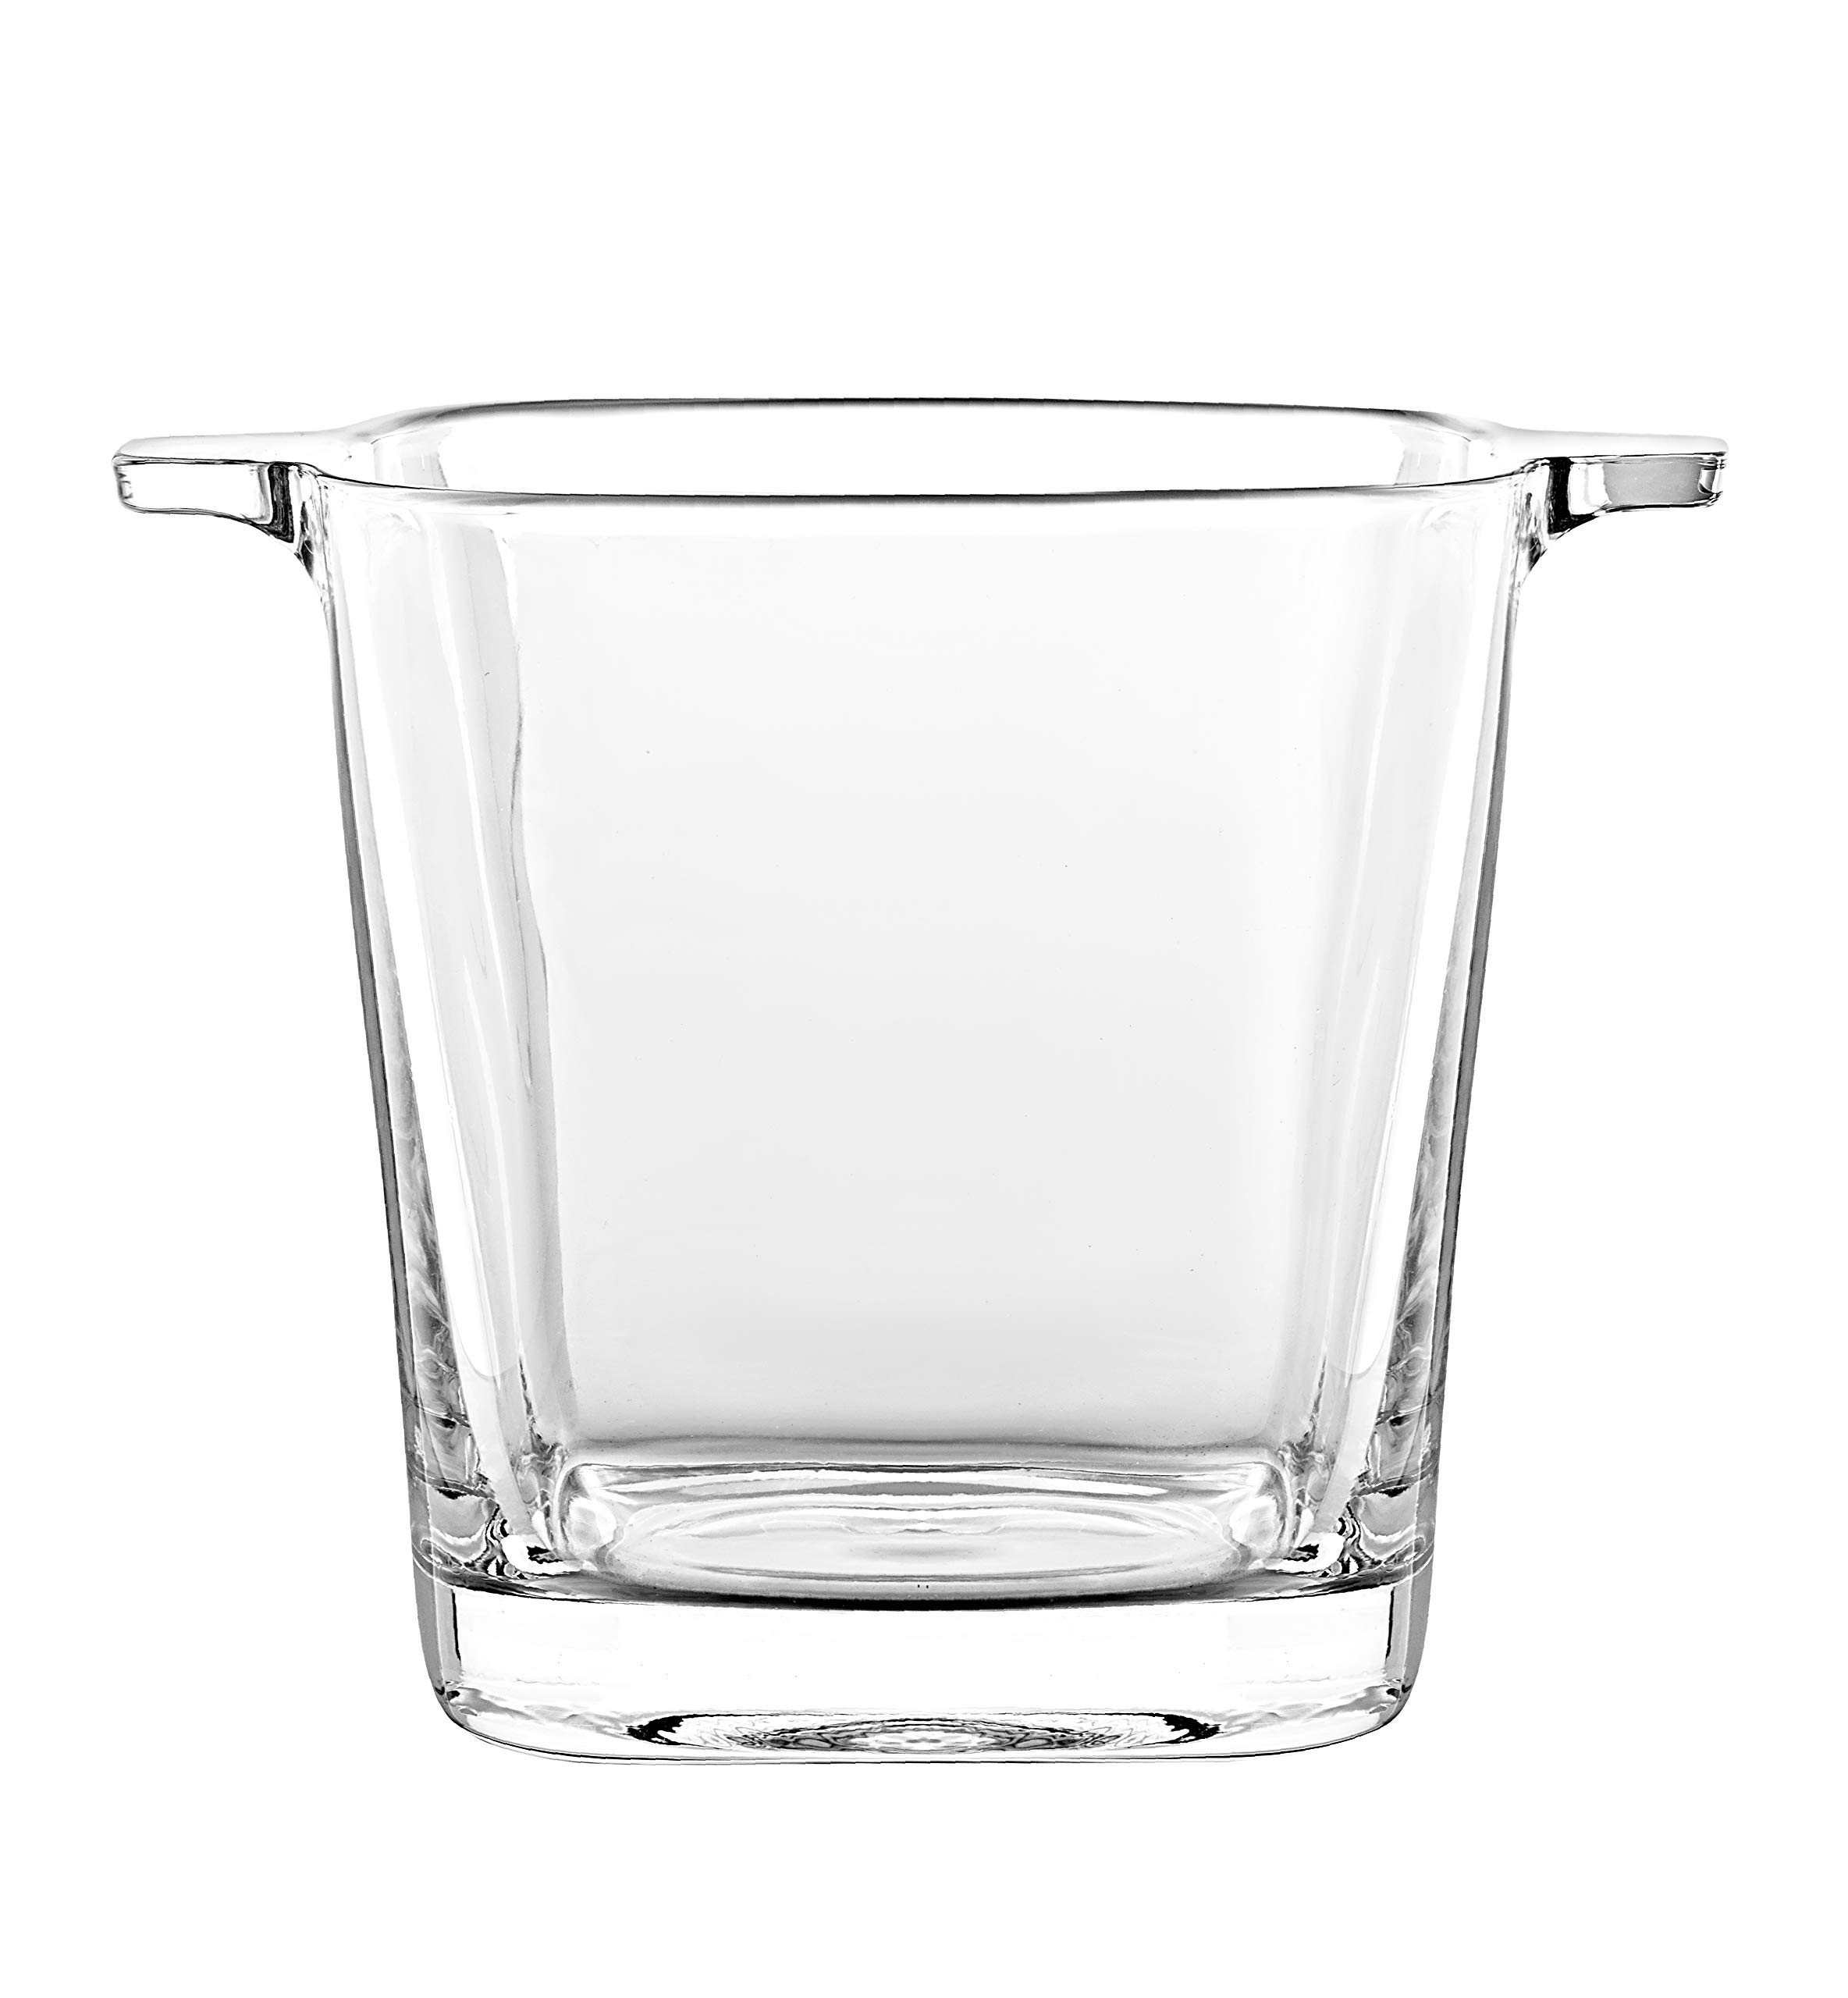 Glass - Ice Bucket - 5.7'' H - By Barski - European Quality Glass - Square Shaped - with Two Handles - Made in Europe by Barski (Image #1)